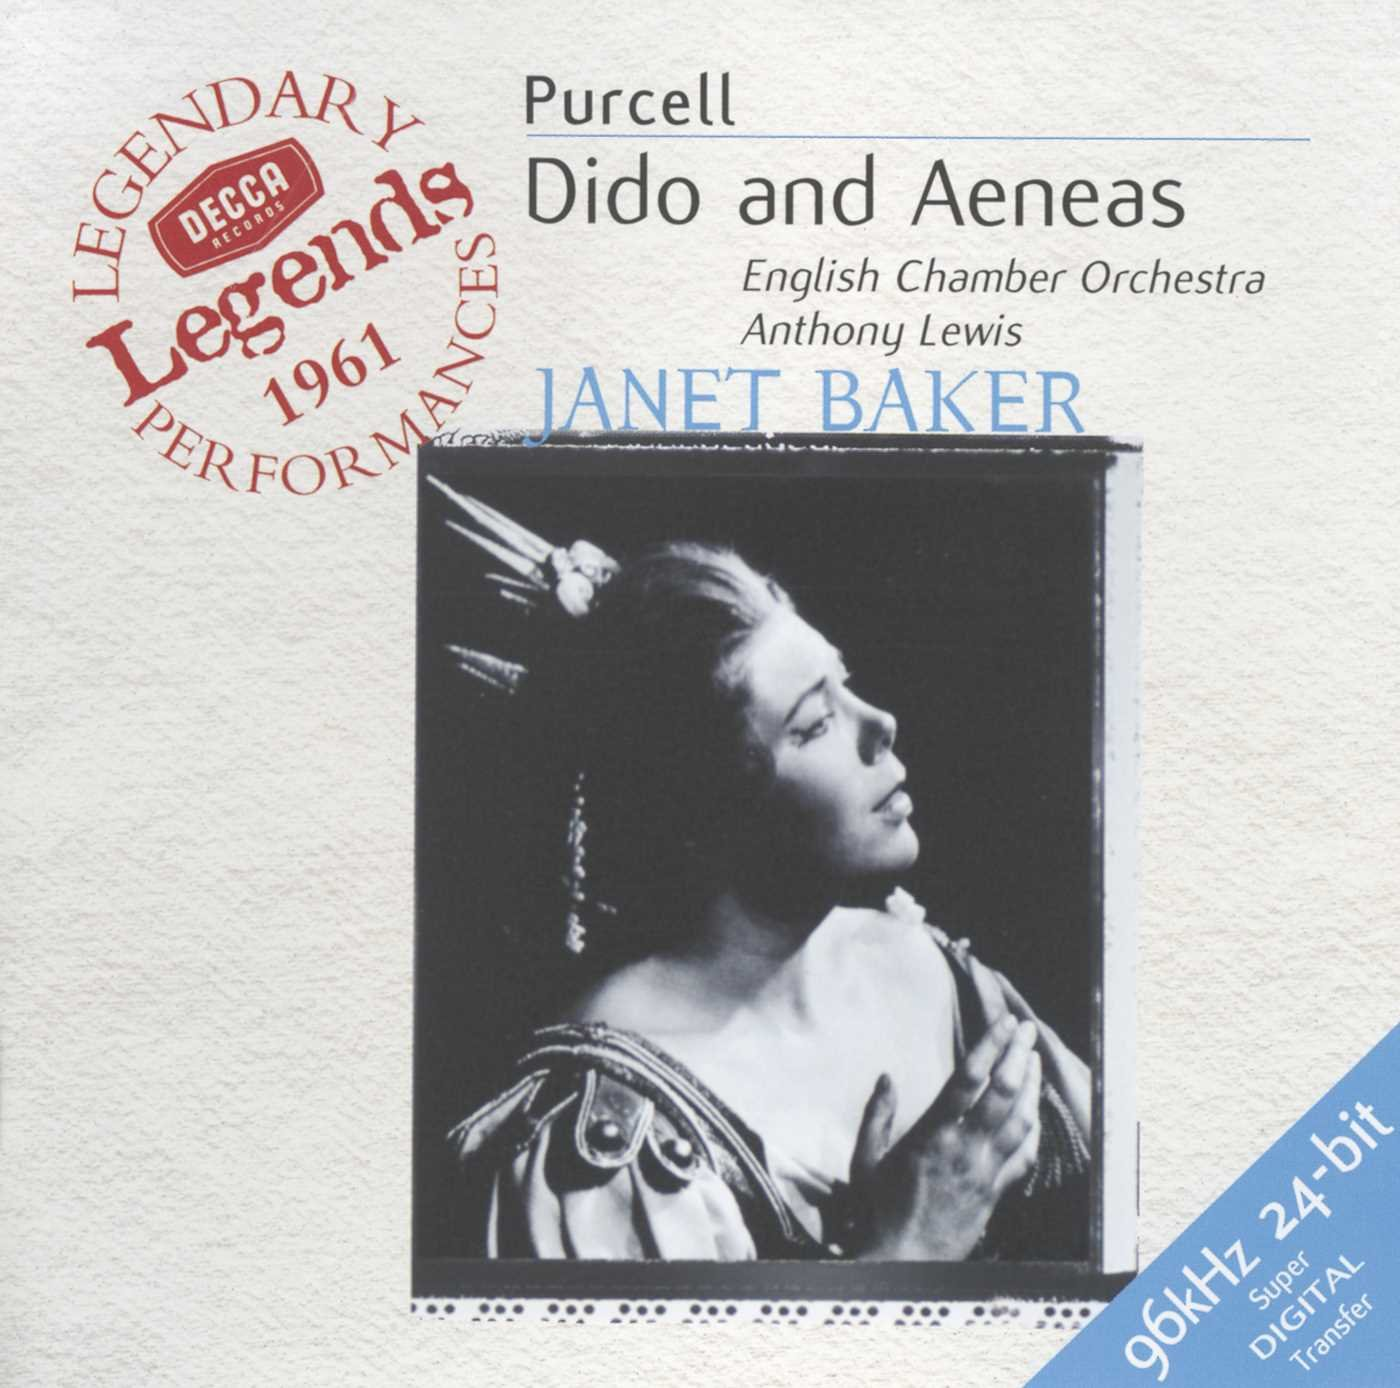 Cover Art for CD of Dido and Aeneas